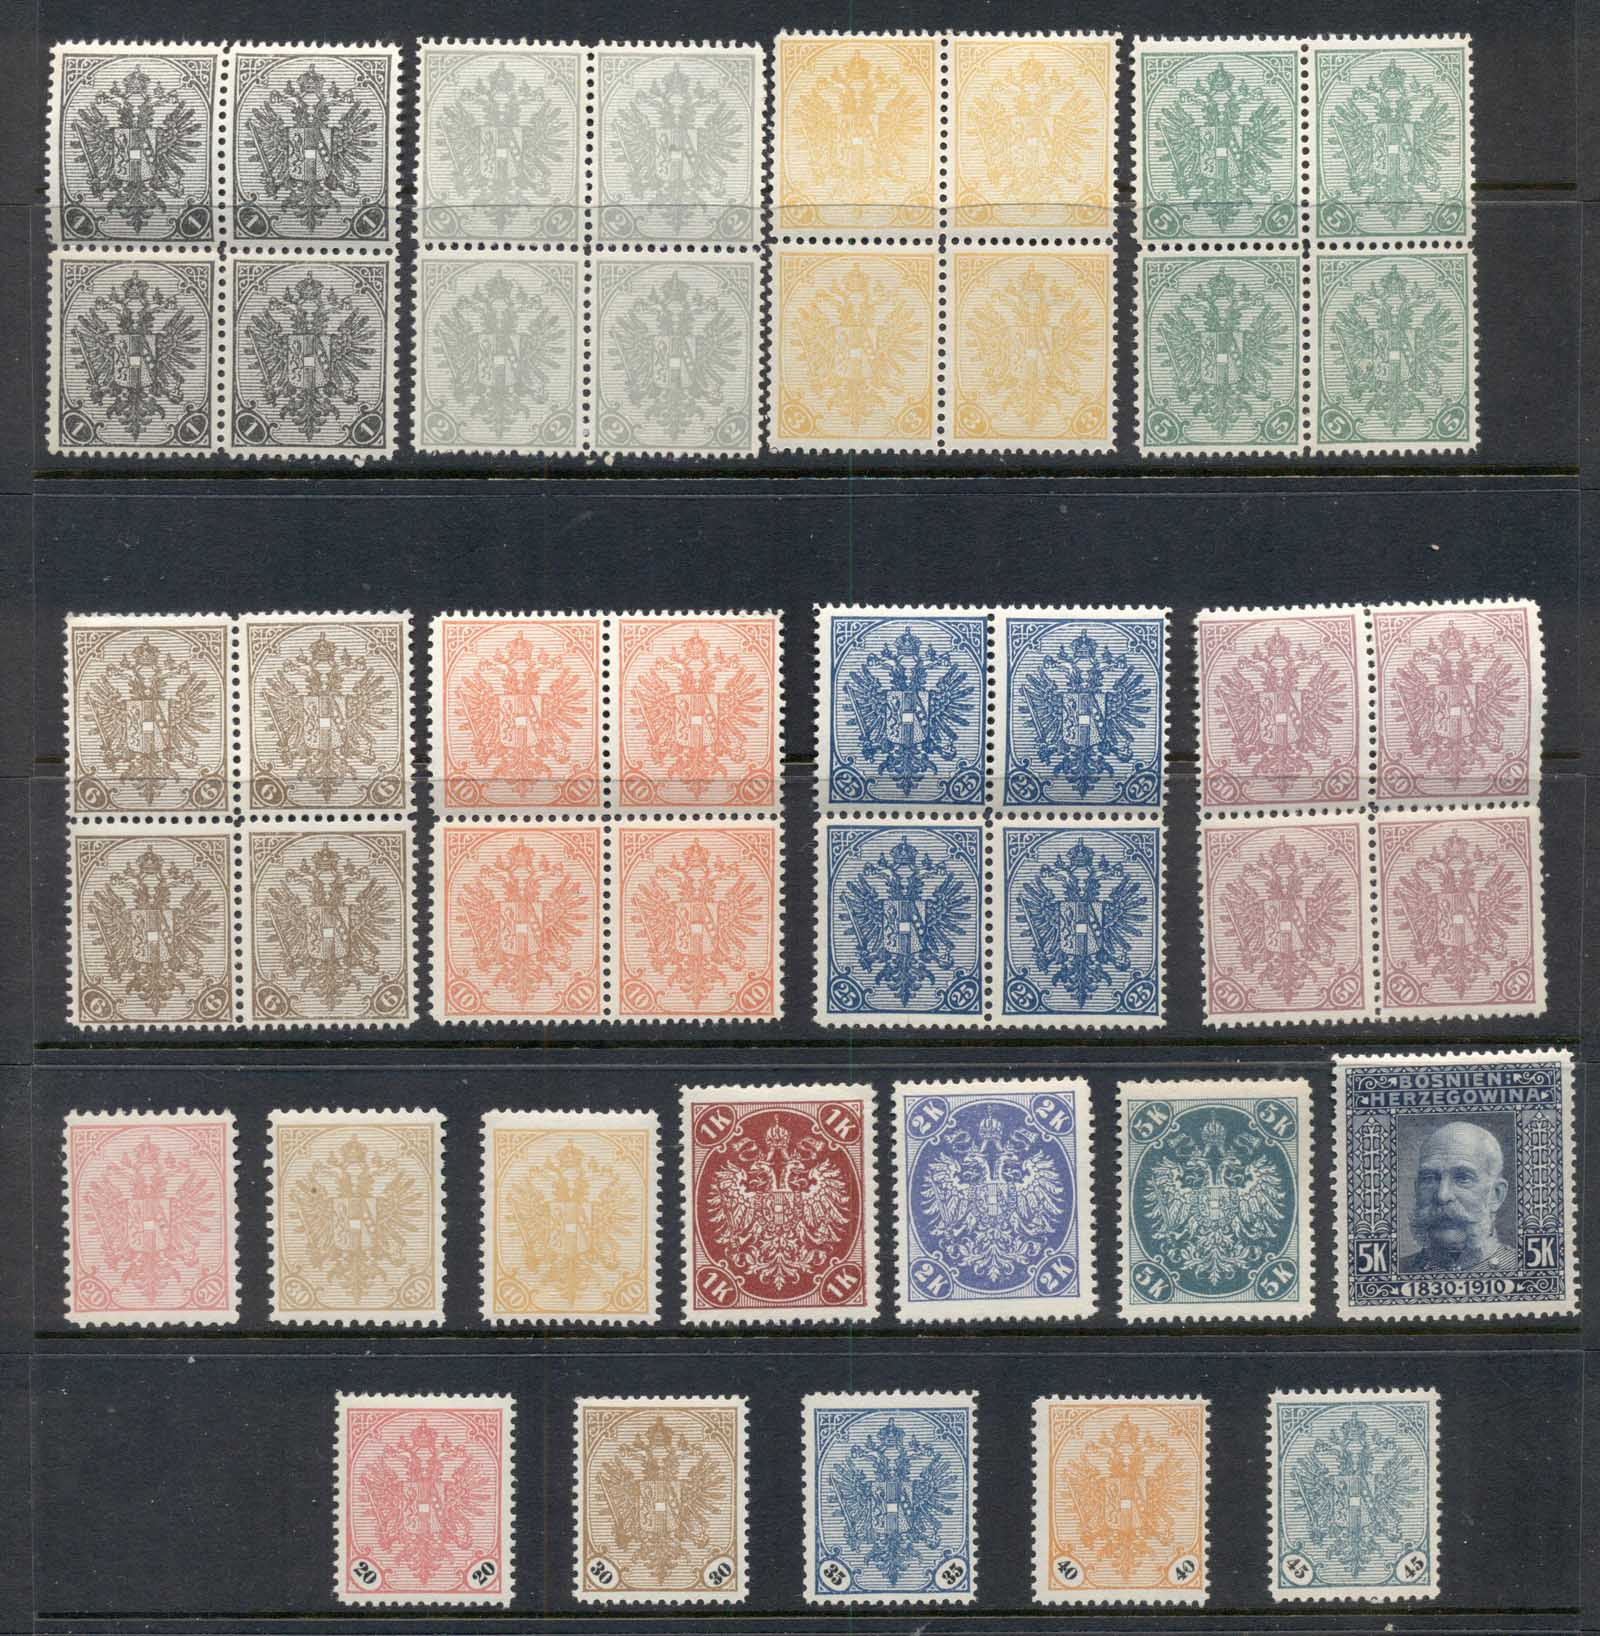 Bosnia & Herzegovina 1900 on Asst inc 20, 30 & 40l reprints MUH/MLH